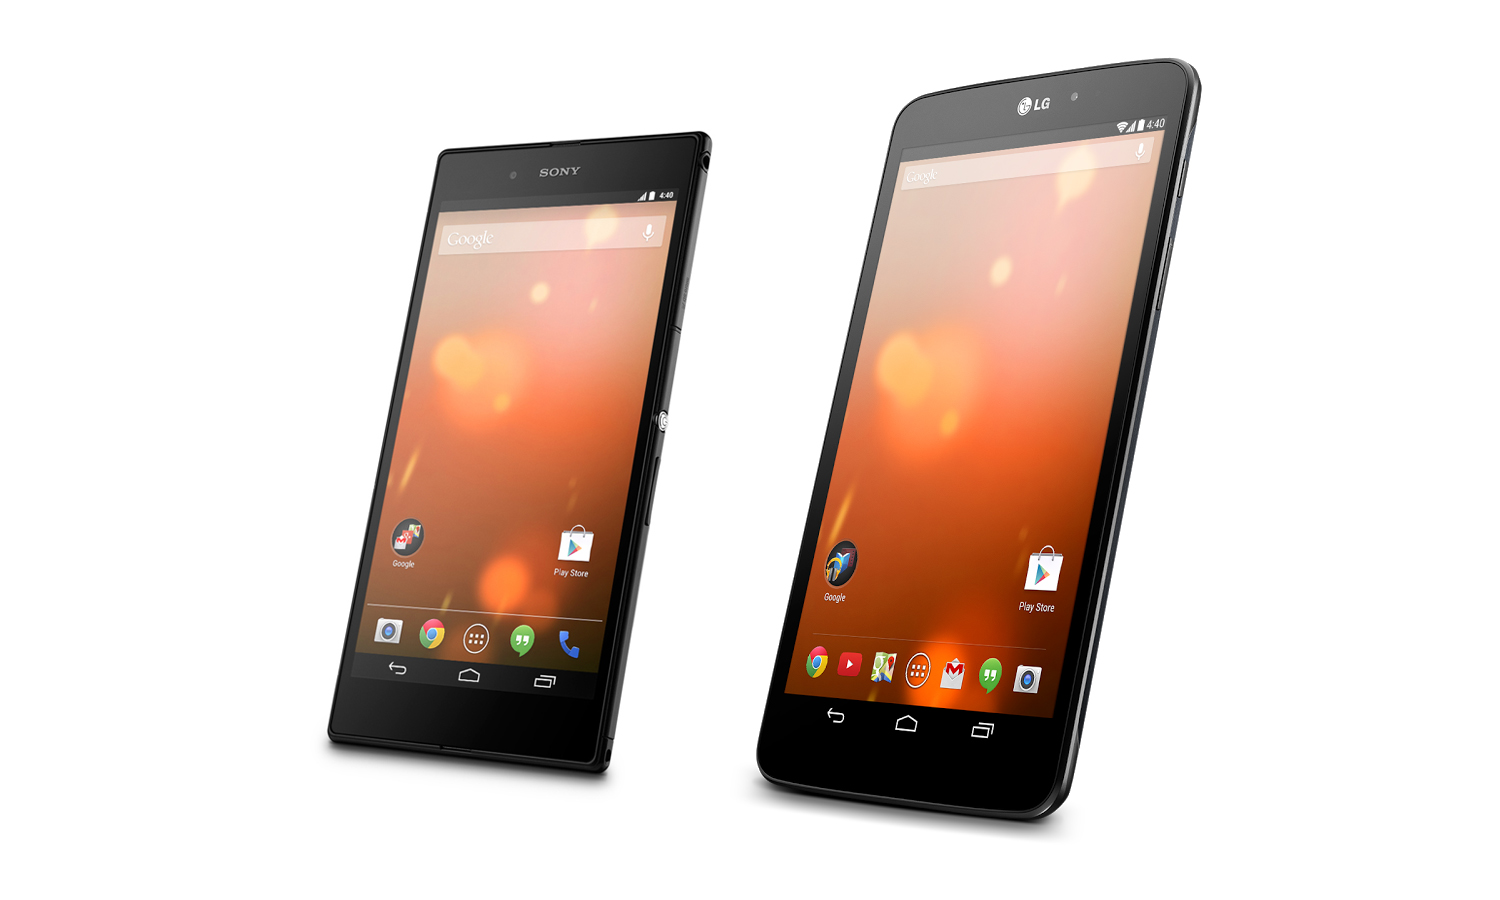 Sony Xperia Z Ultra LG G Pad 8.3 Google Play Edition